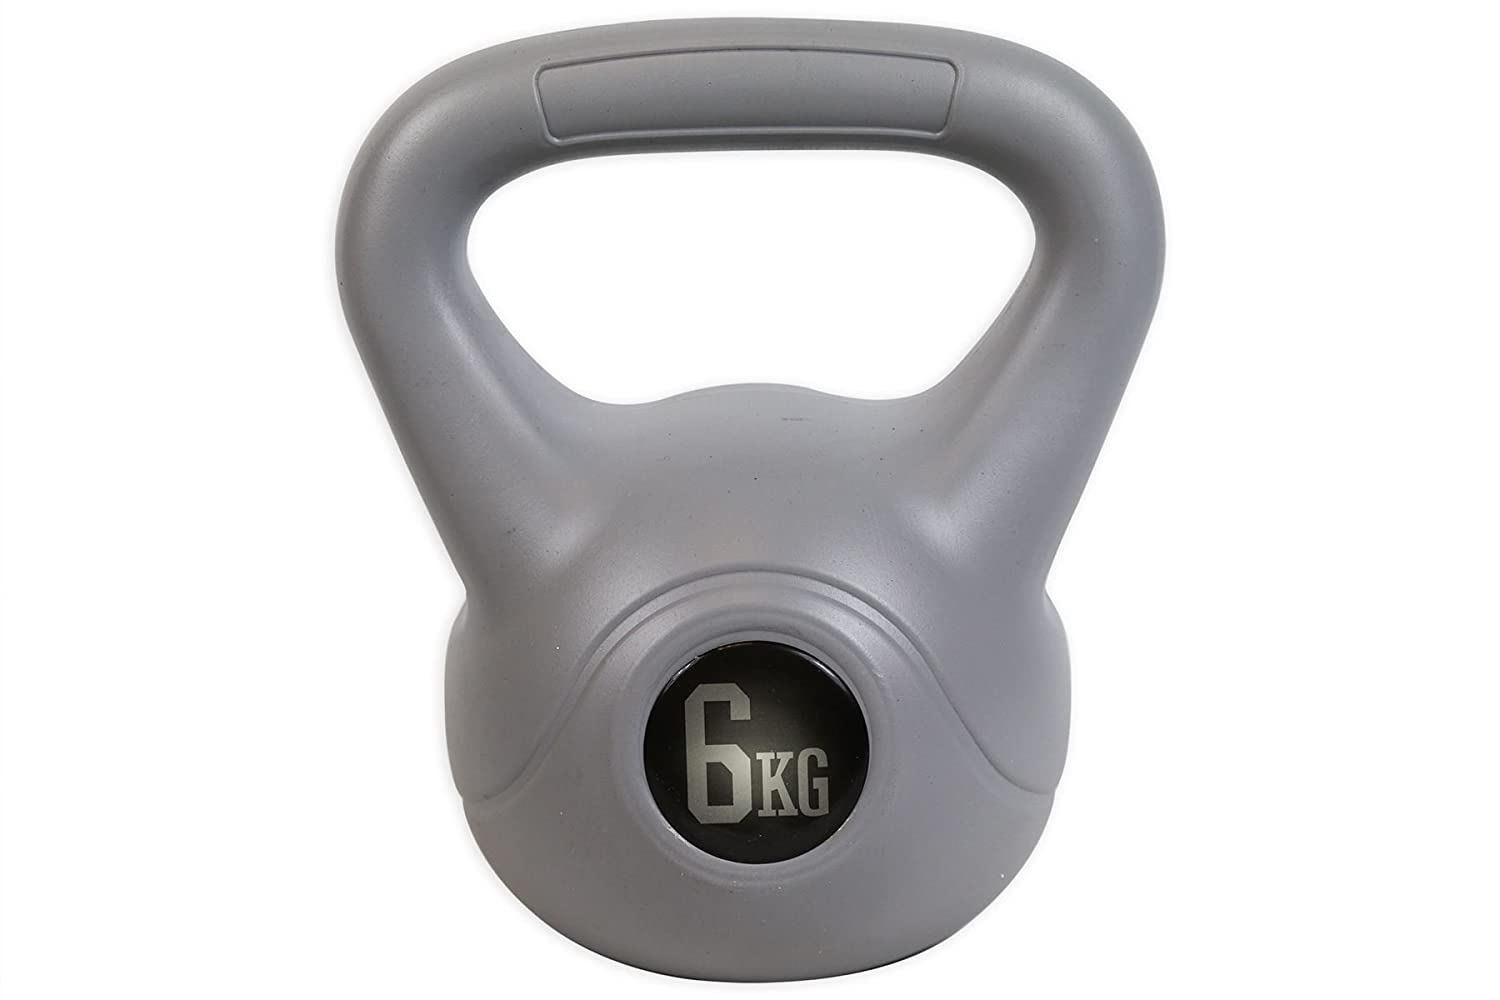 Kettle Bell Gym Workout Weights Strength Gym Equipment HIIT Training High Intensity Cardio Cardiovascular Circuit training